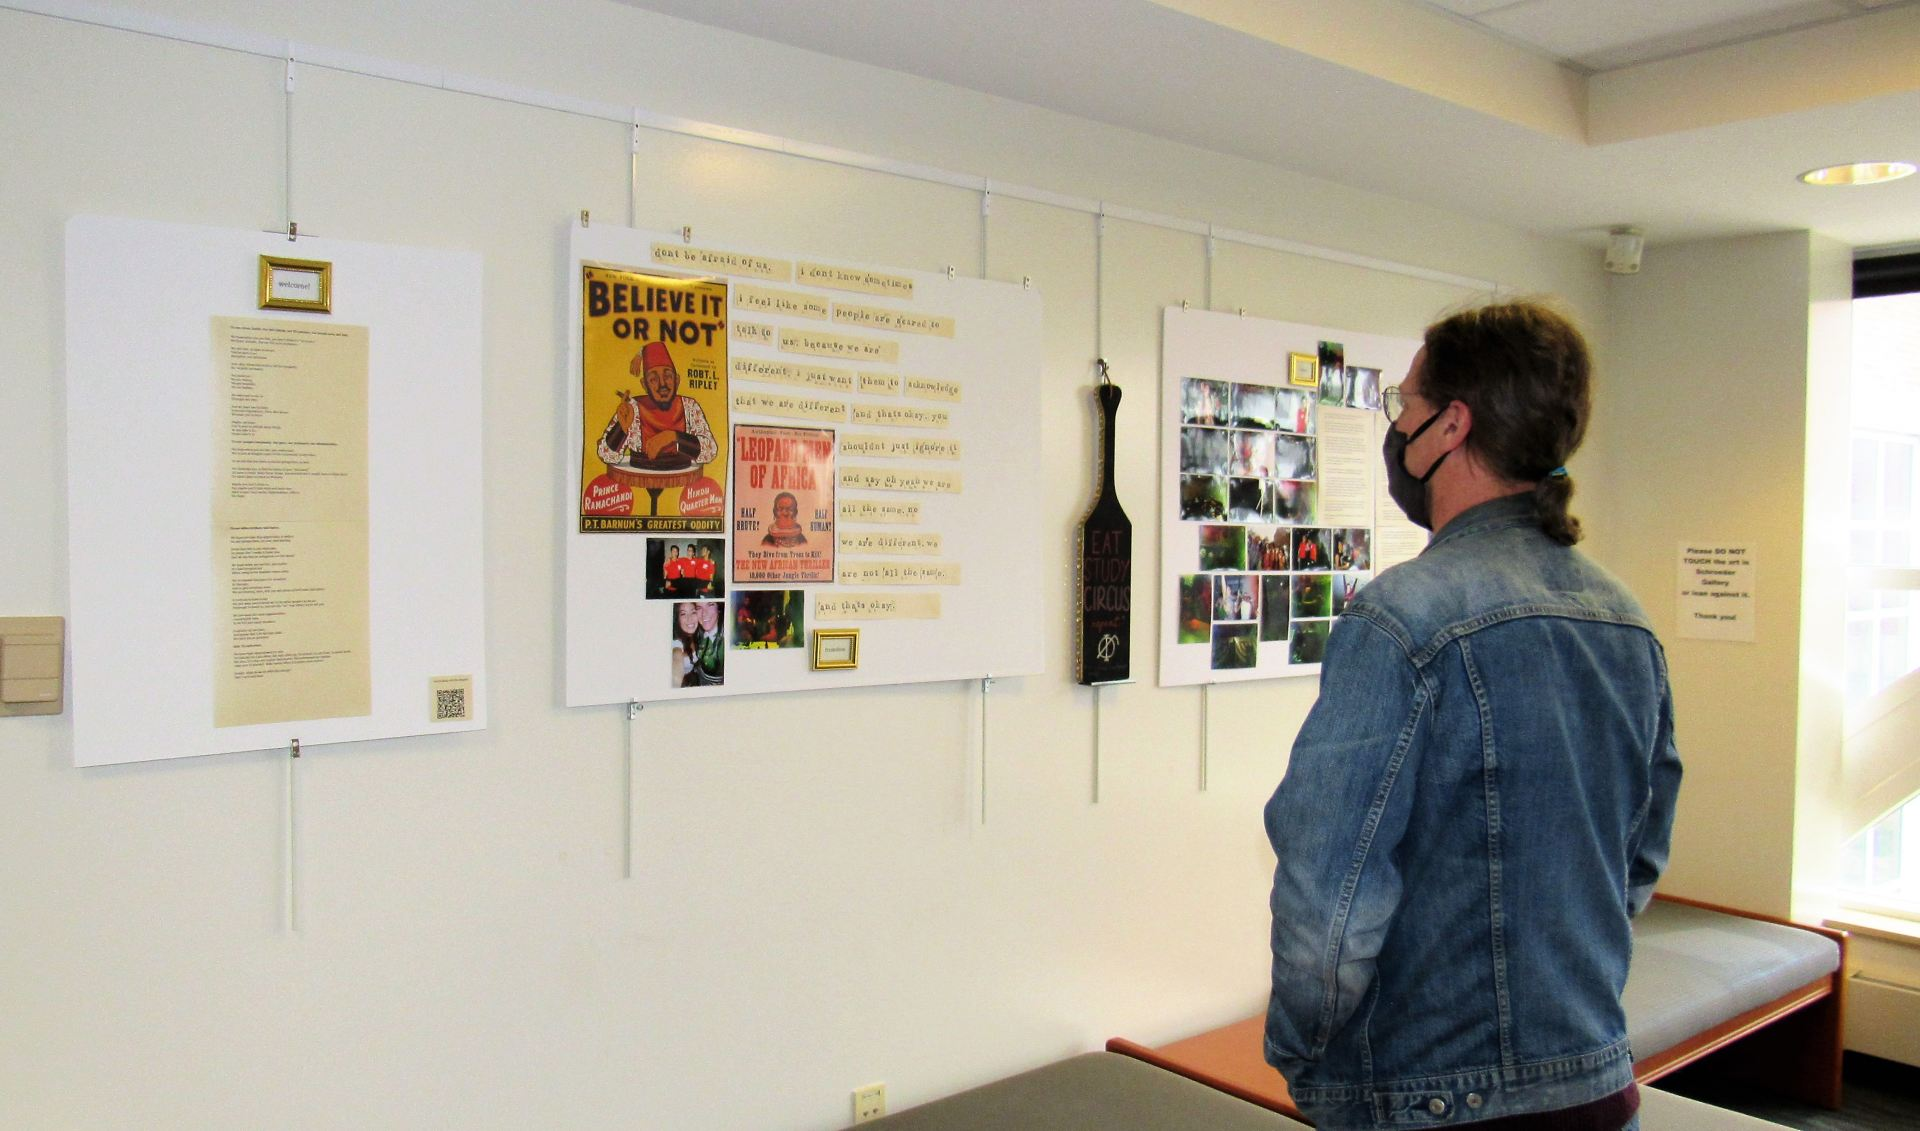 A visitor of the gallery viewing a decorated wall of the exhibit.